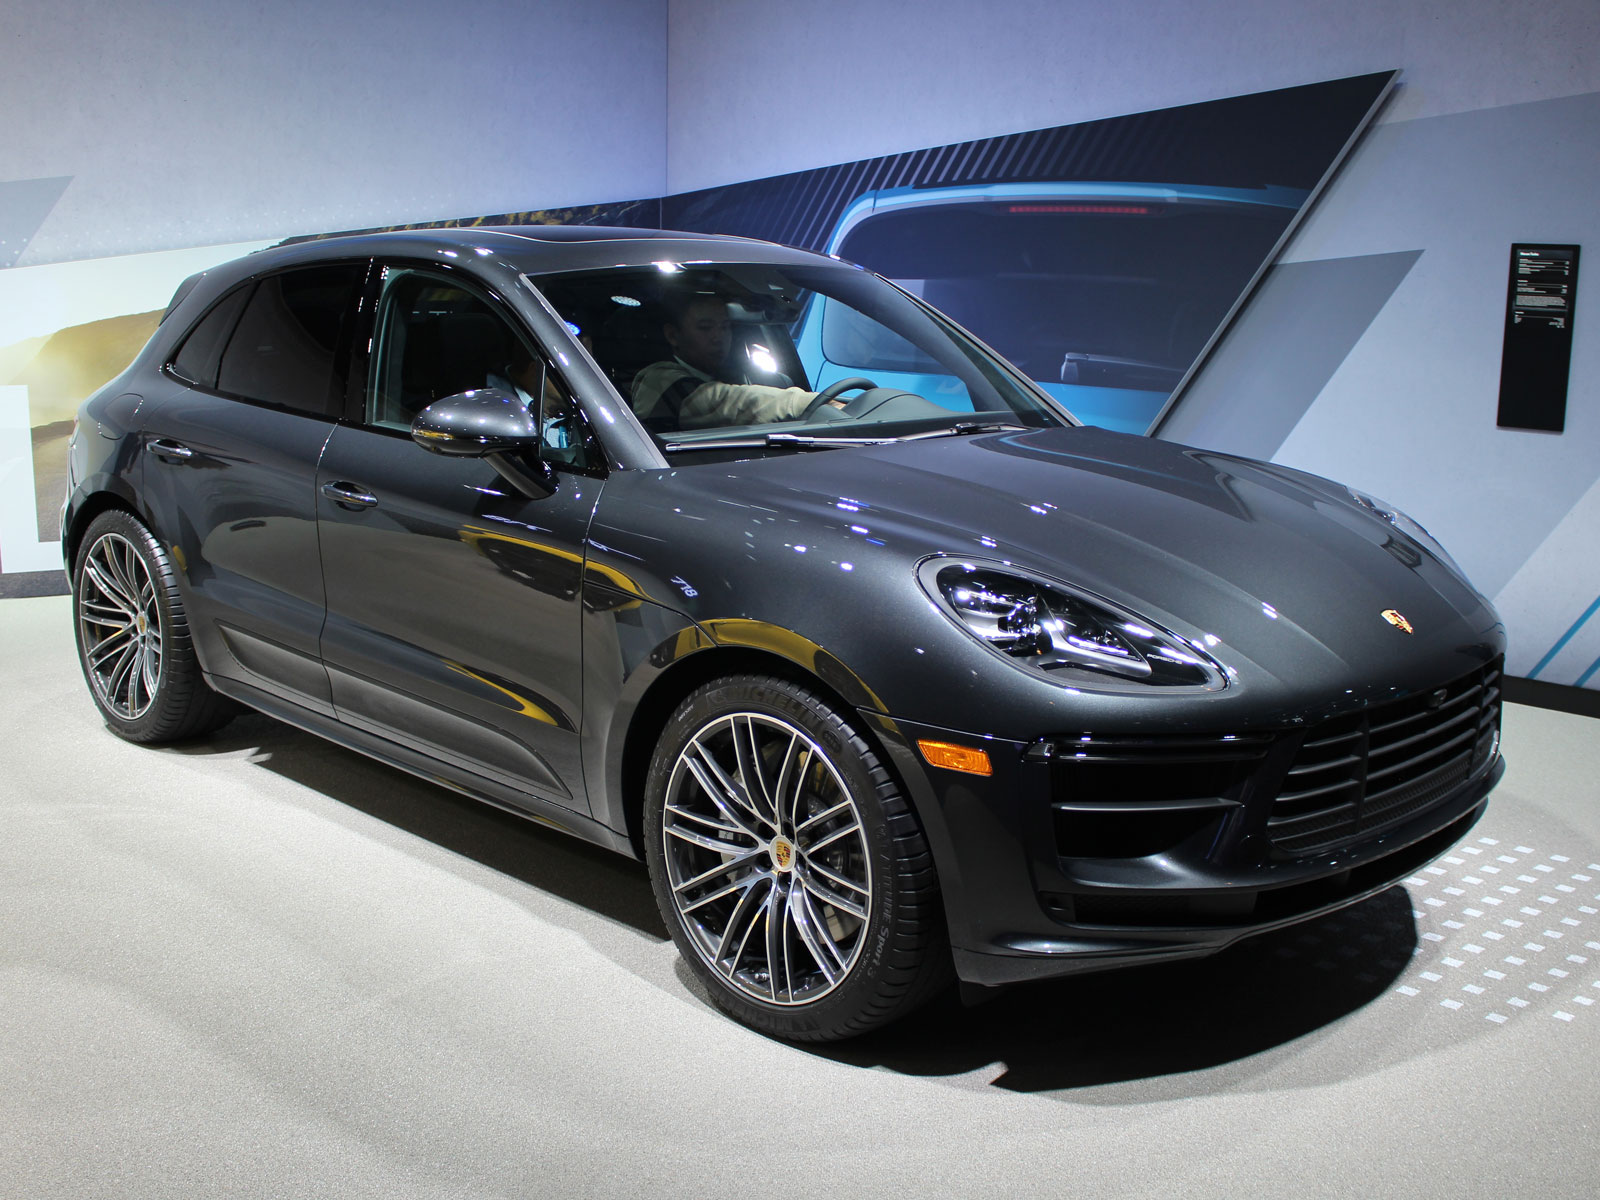 434 Hp 2020 Porsche Macan Turbo Shown In L A Motor Illustrated